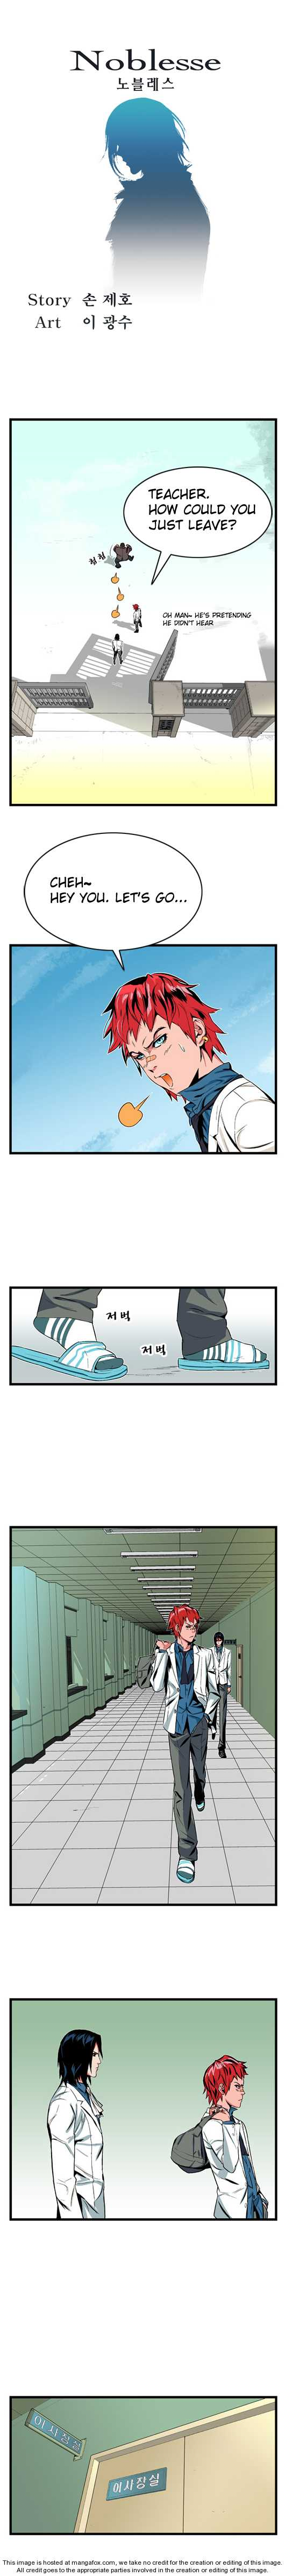 Noblesse 5 Page 1